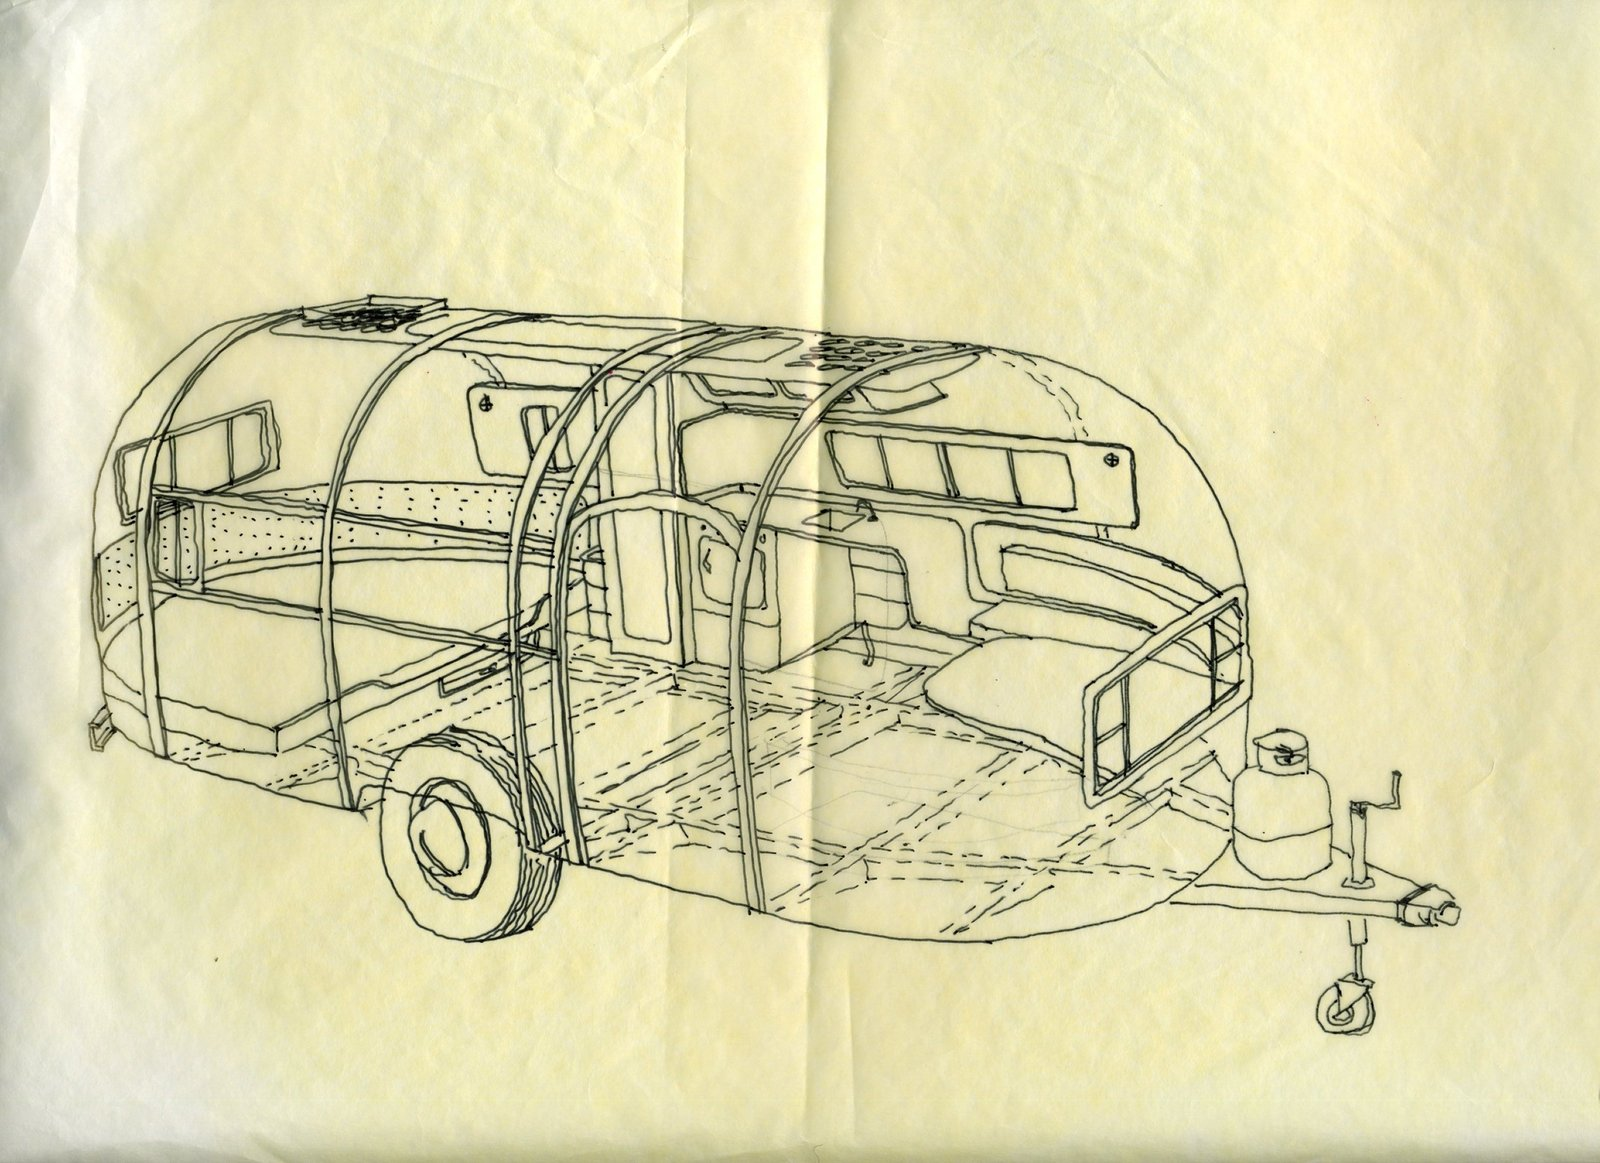 Airstream: Re-designing an American icon - Photo 2 of 8